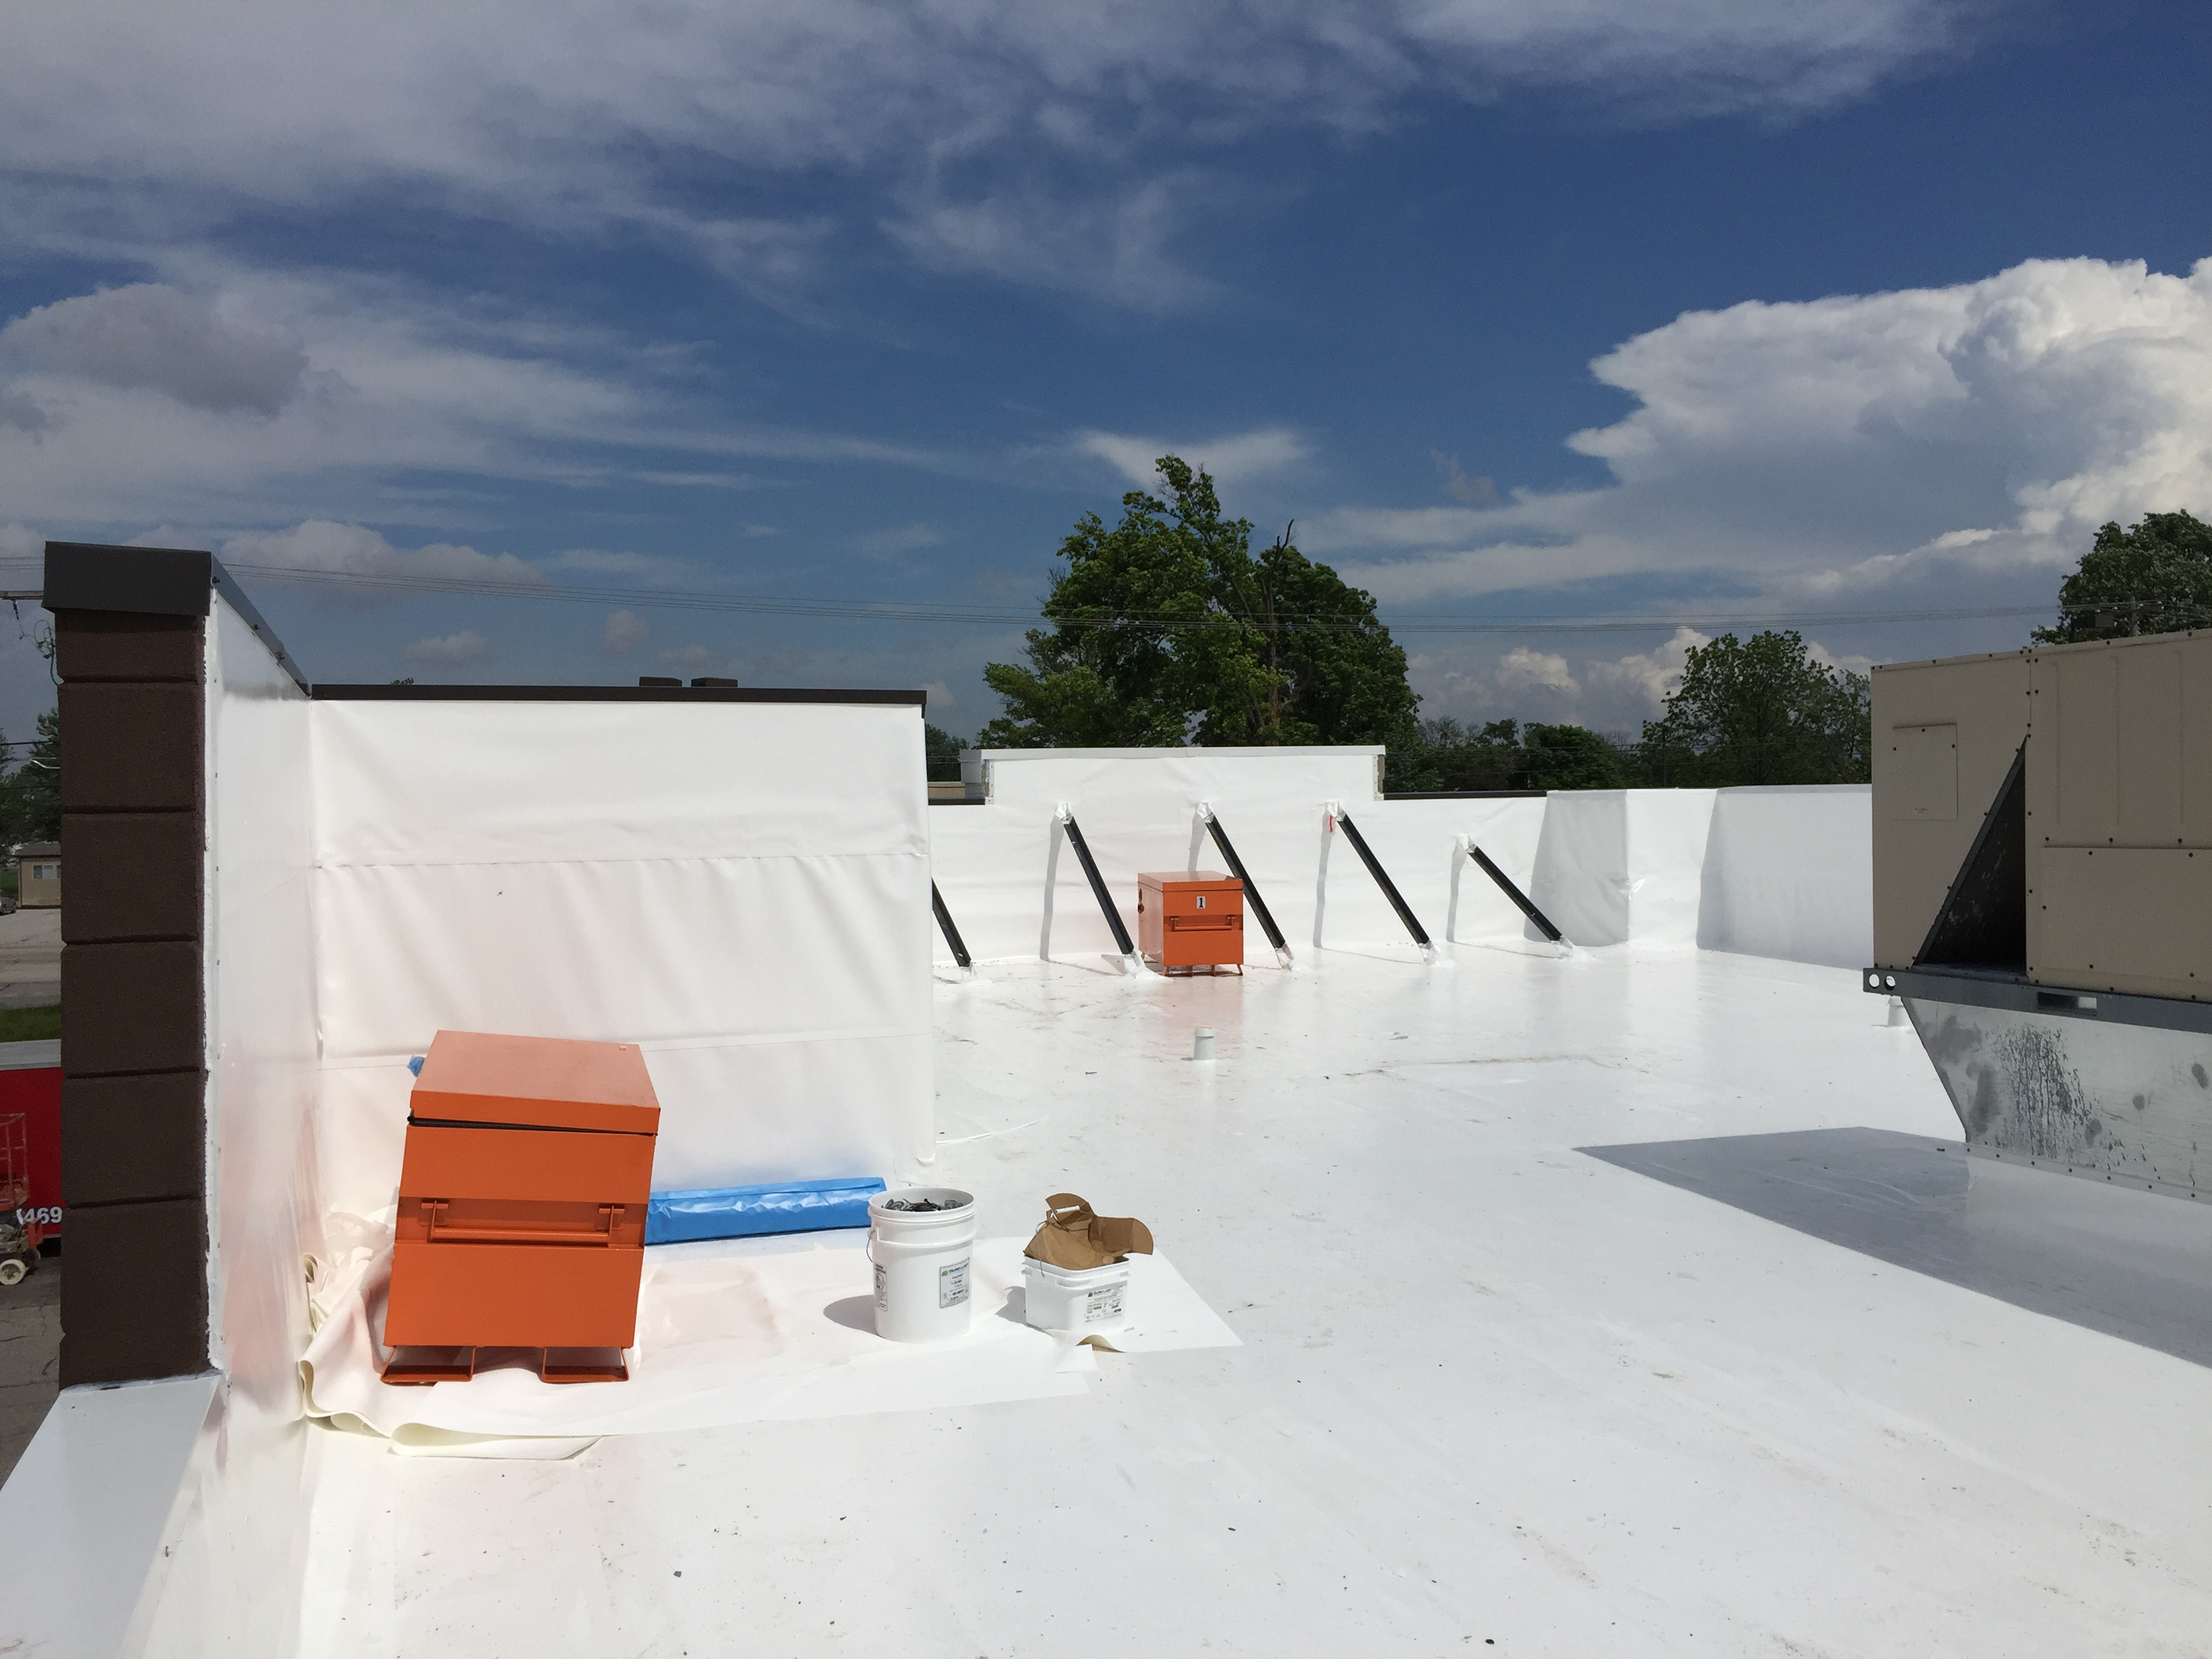 Flat Roof Repair Welding Complete- Franklin